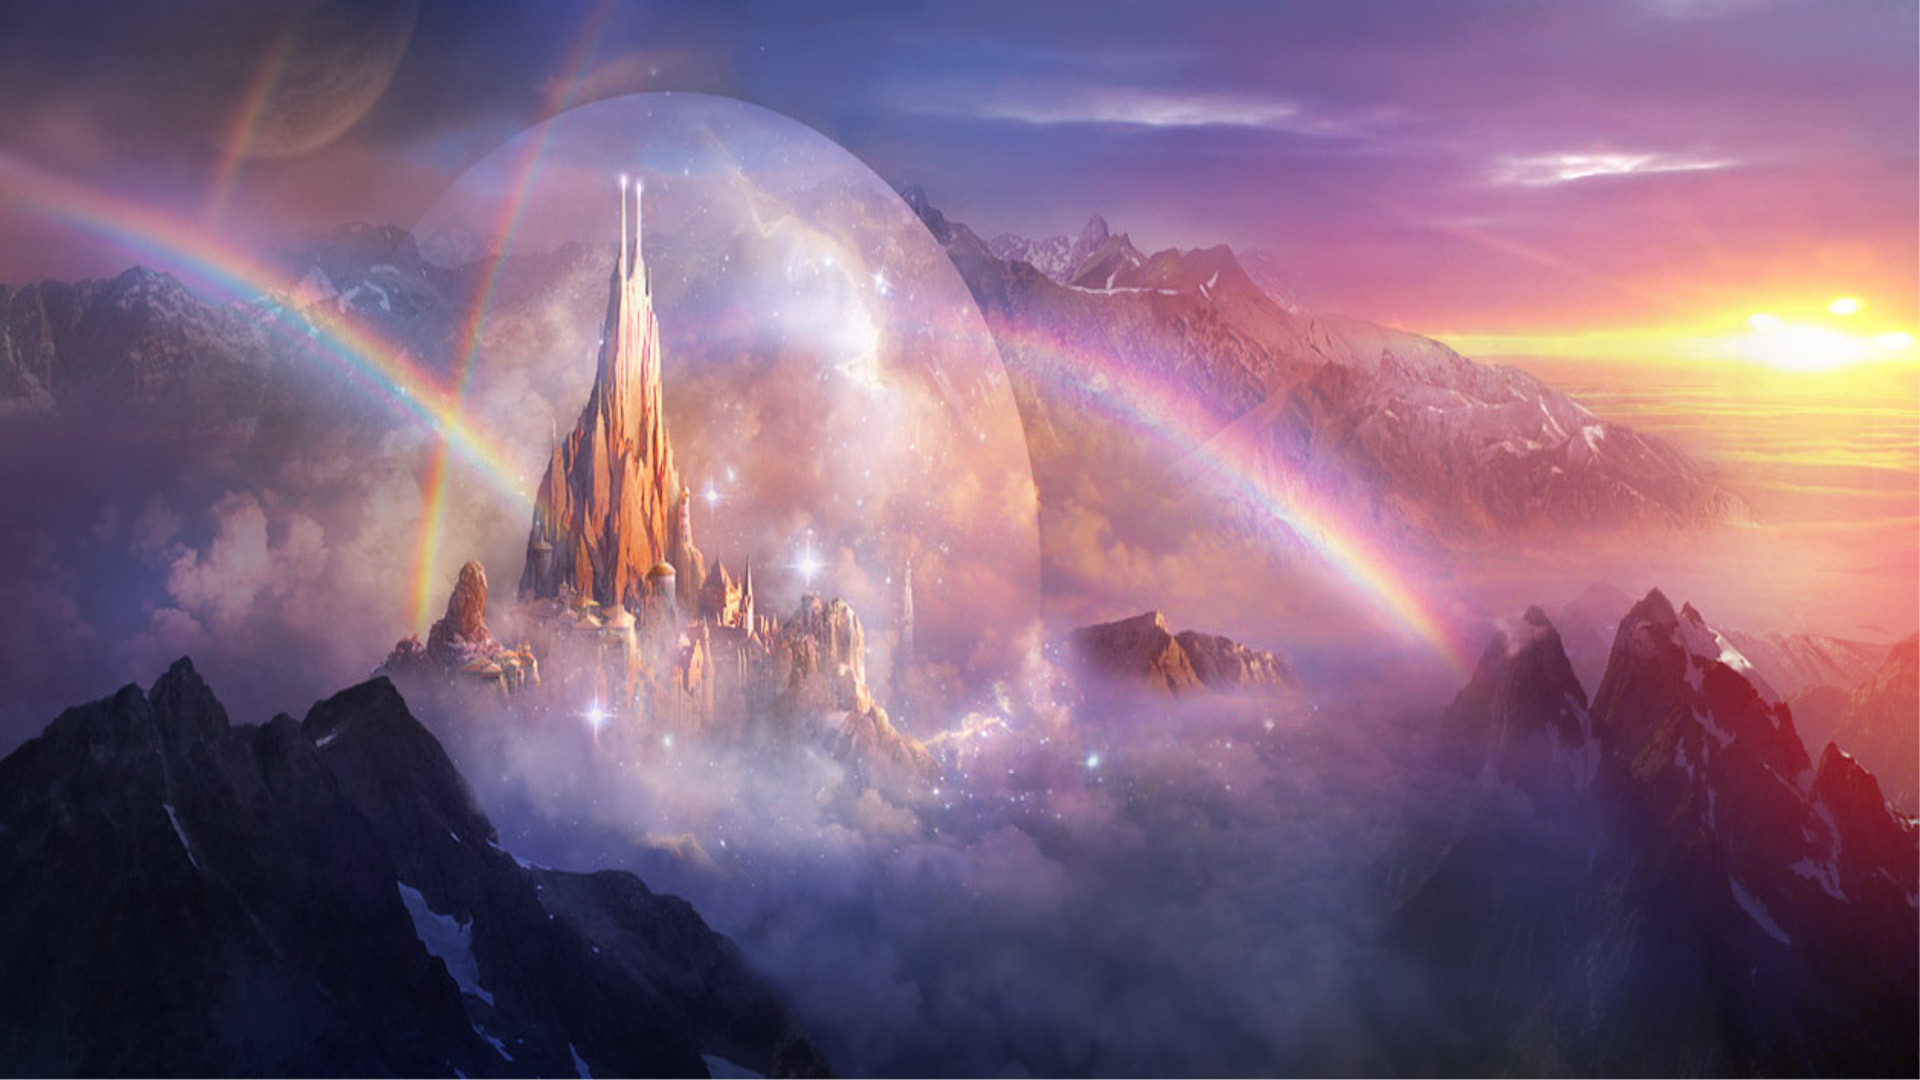 2500x1562 Image For Fantasy Mountain Castles Wallpaper Free HD